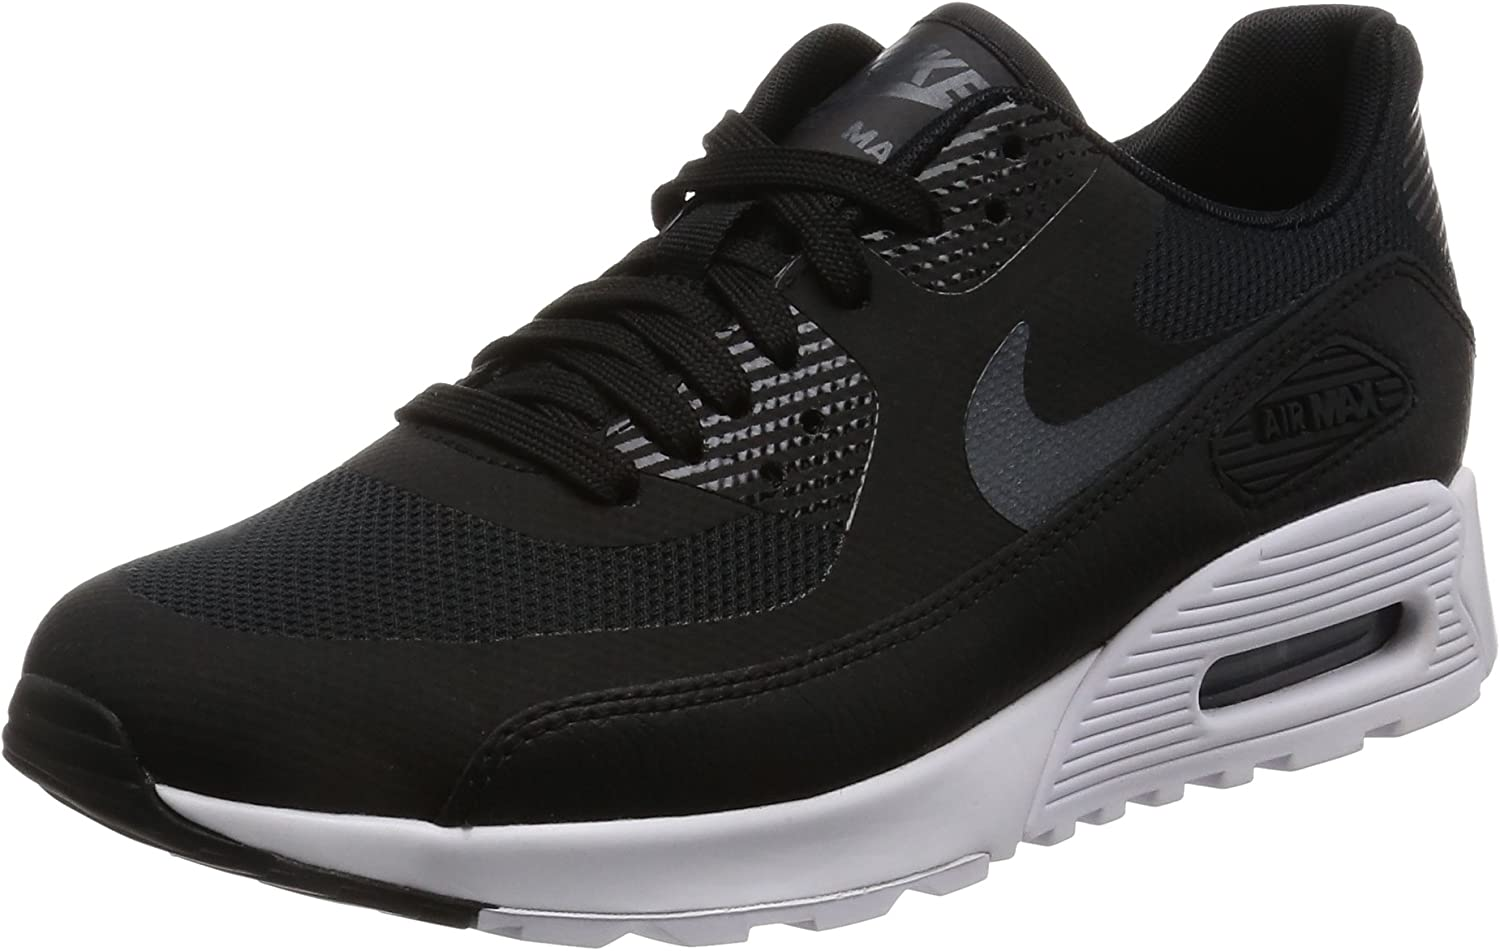 Details about Womens NIKE AIR MAX 90 ULTRA 2.0 Black Trainers 881106 002